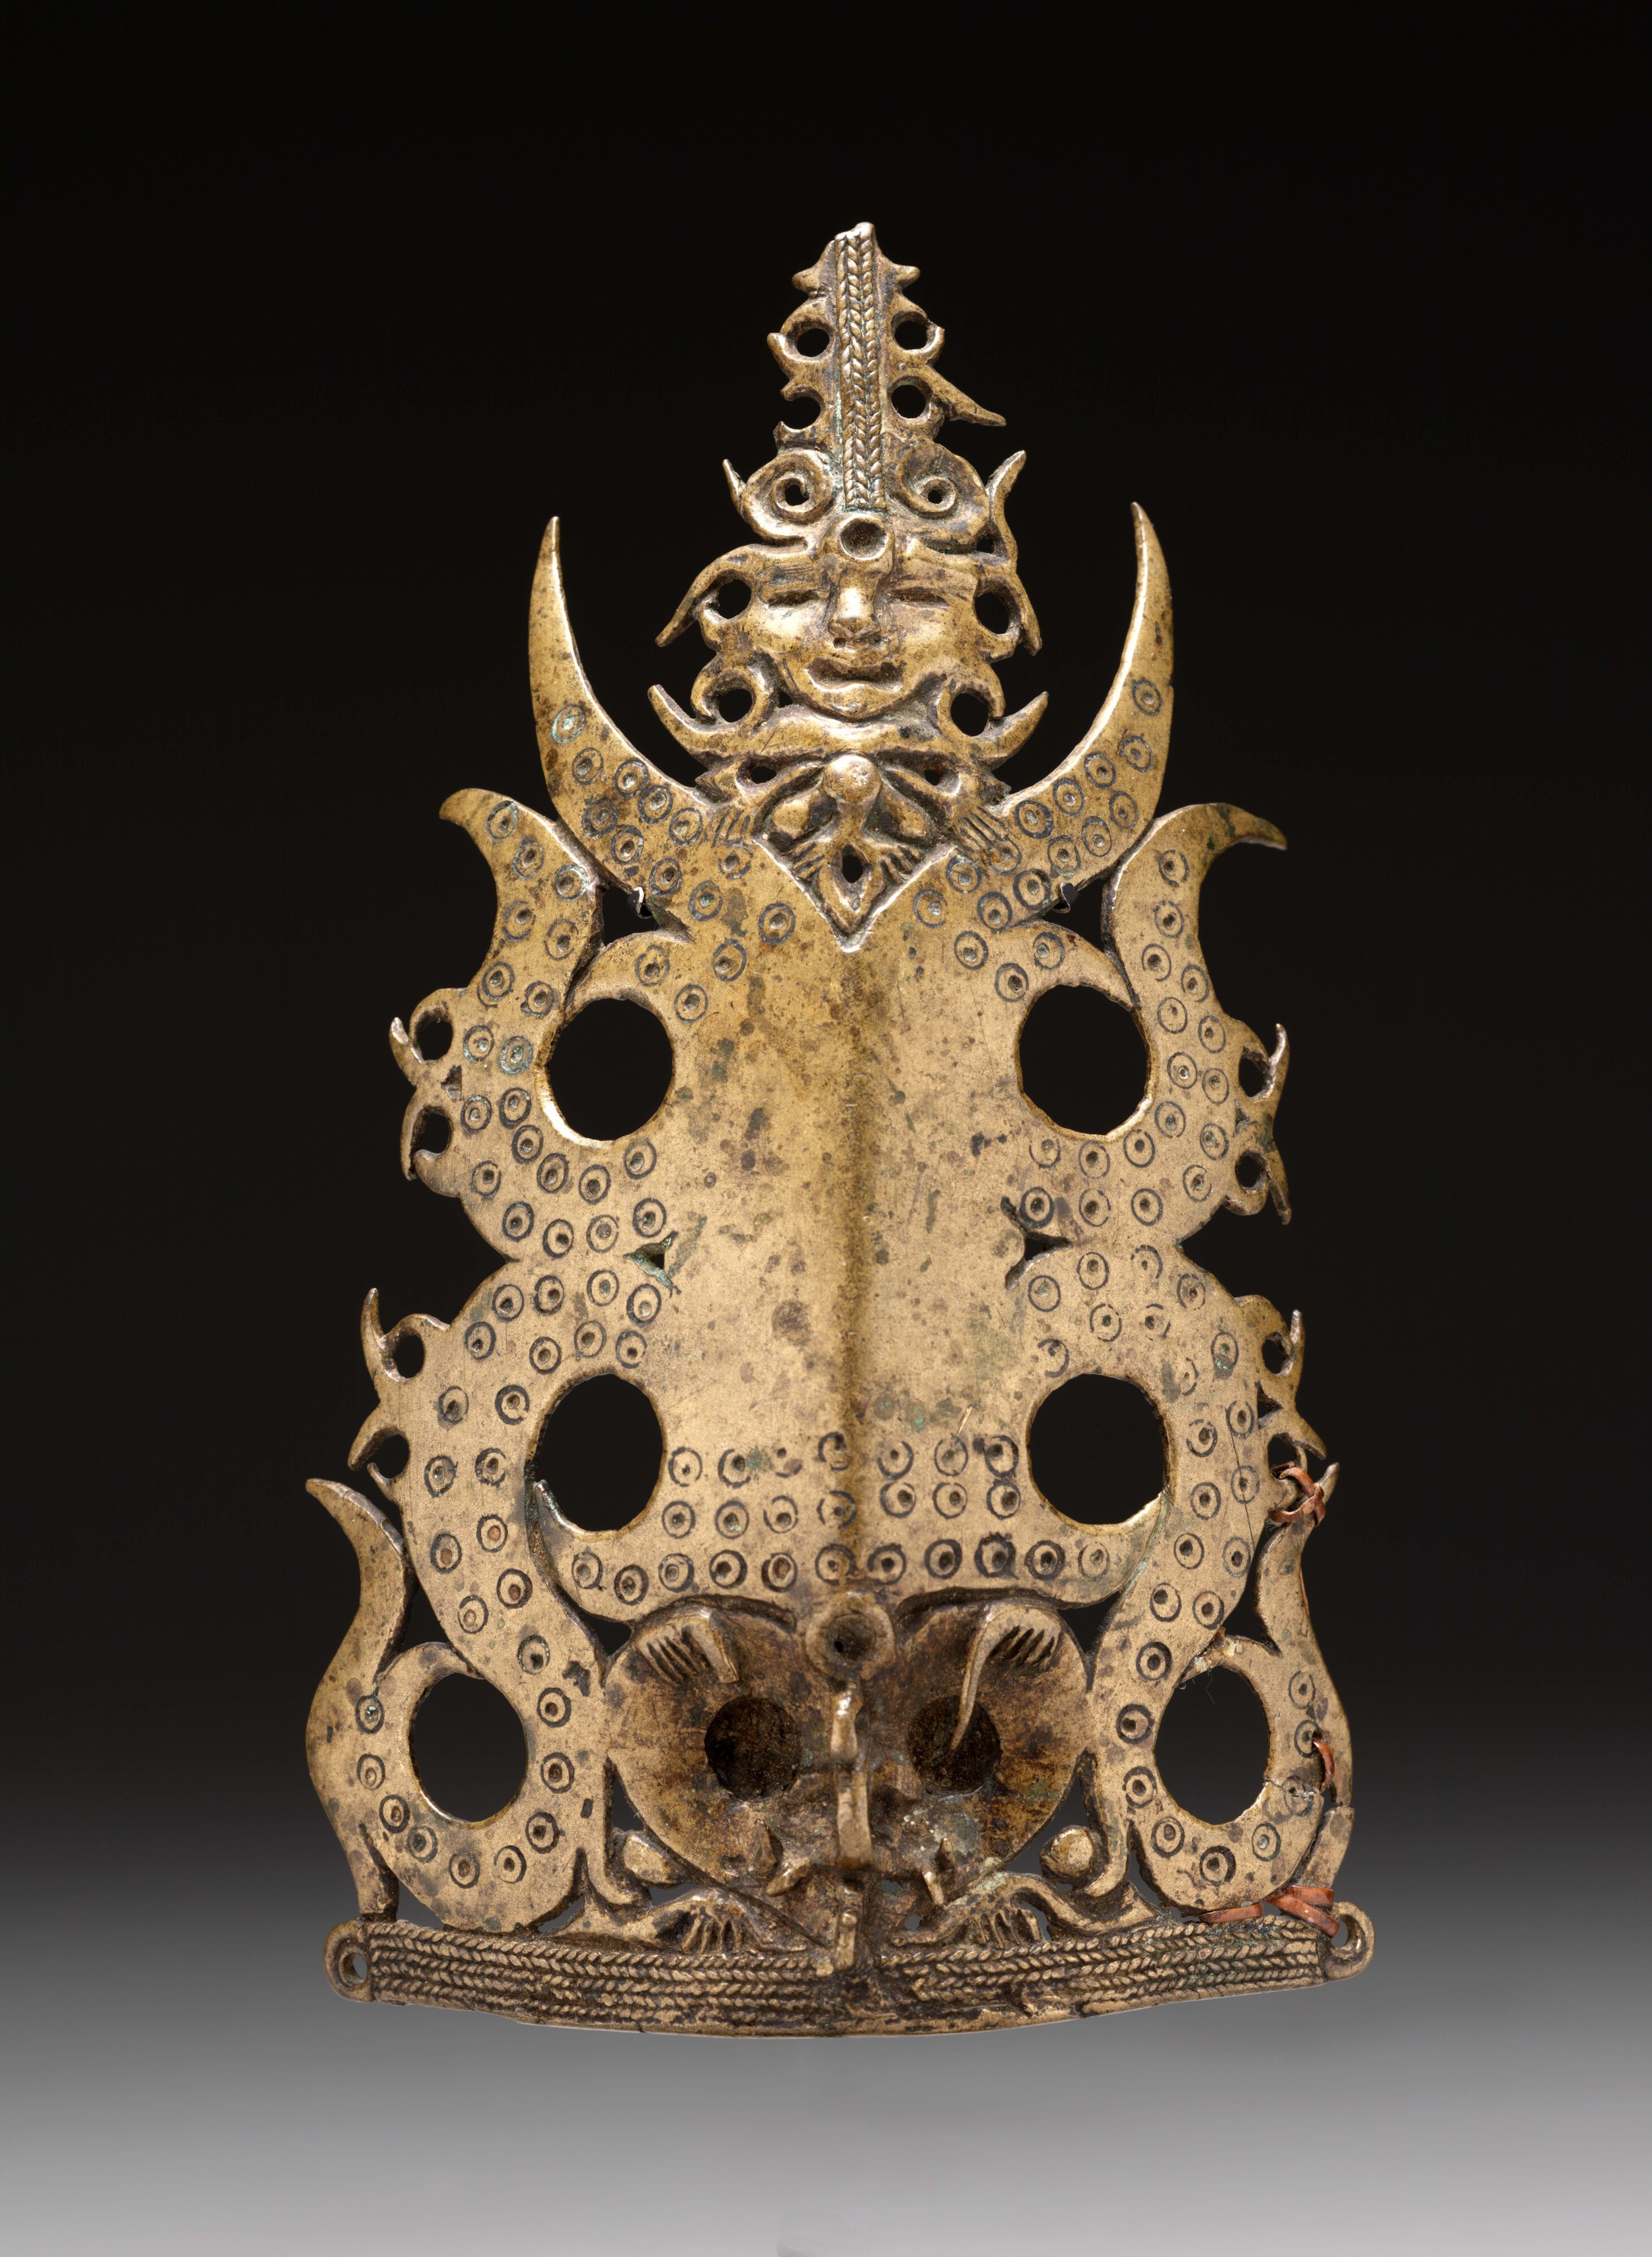 Warrior's Headdress Ornament, Frontal Figure | Tap Lavong Kayo © Dallas Museum of Art | Texas, USA